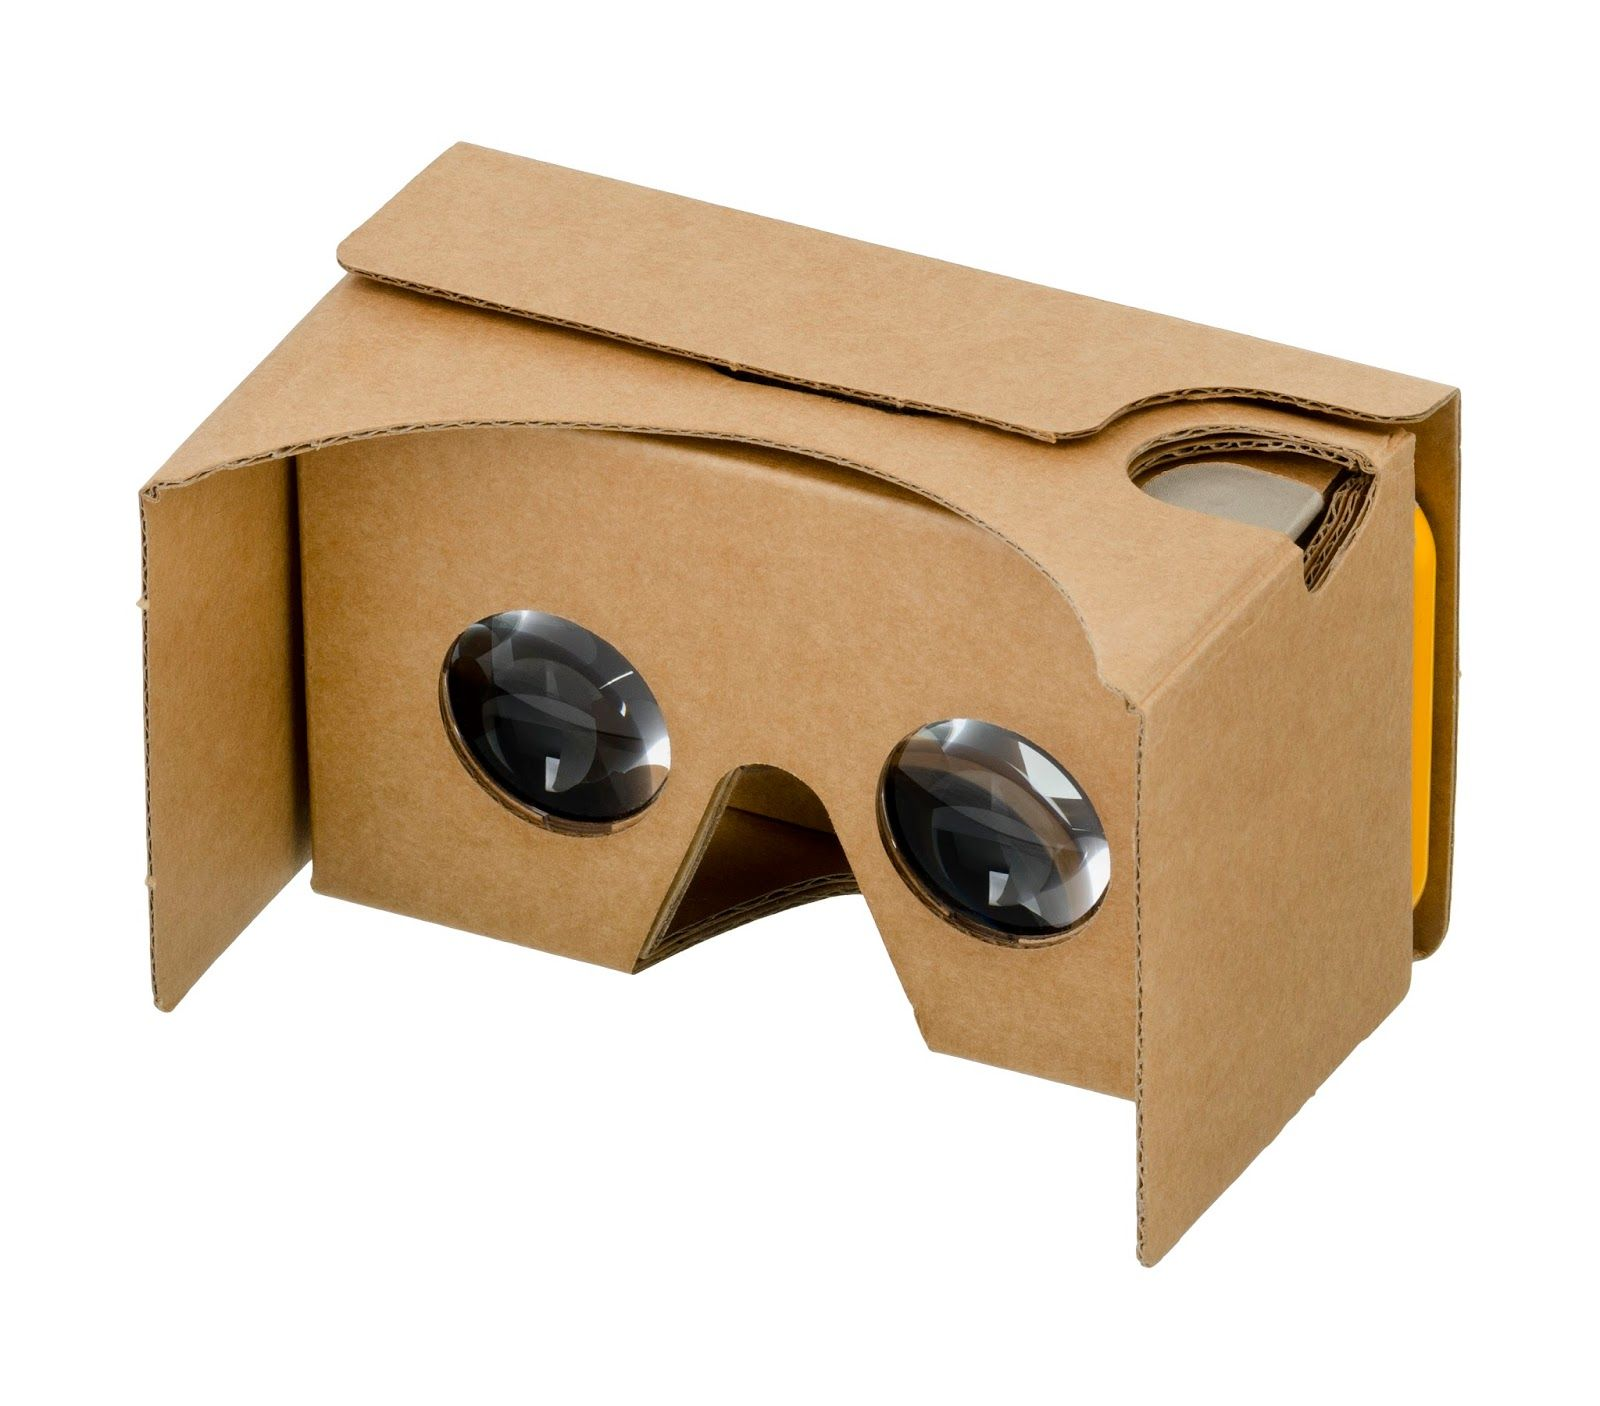 3f985fdc416 YouTube For iOS Adds Support For Cardboard VR Headset